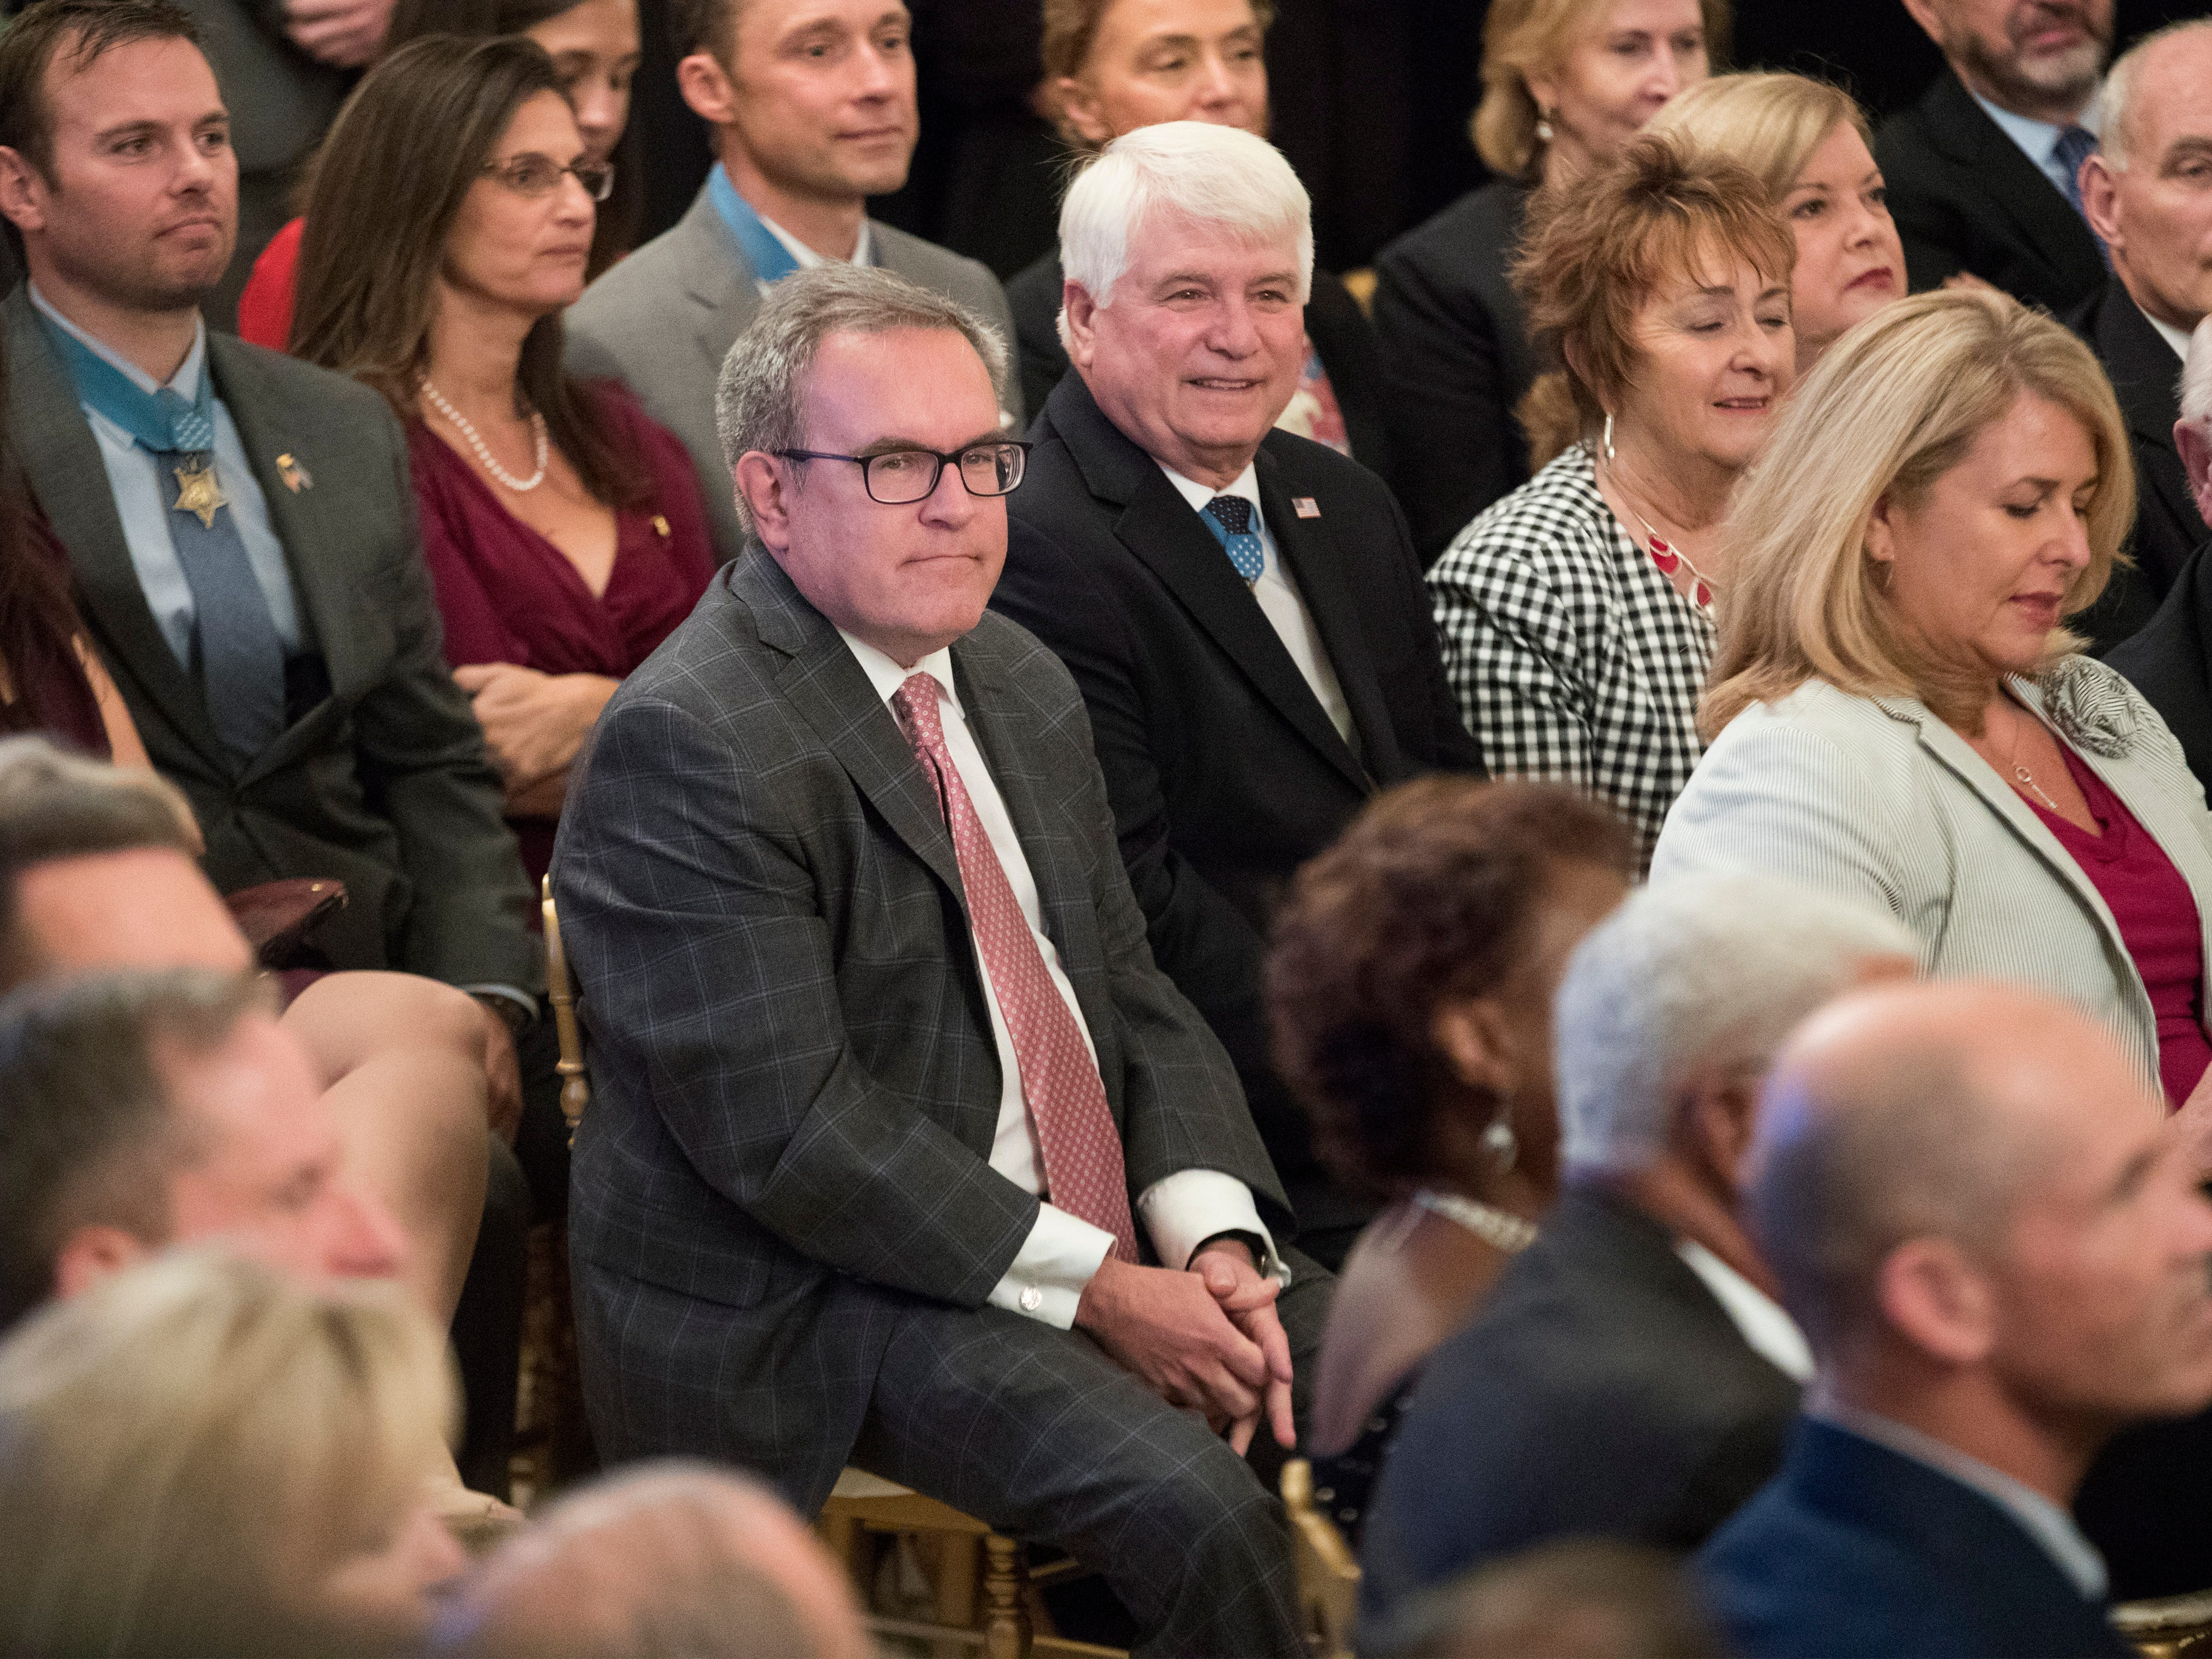 Acting Administrator of the US Environmental Protection Agency (EPA) Andrew Wheeler listens to President Donald J. Trump deliver remarks during a reception for the Congressional Medal of Honor Society, in the East Room of the White House in Washington, DC, Sept. 12,  2018.